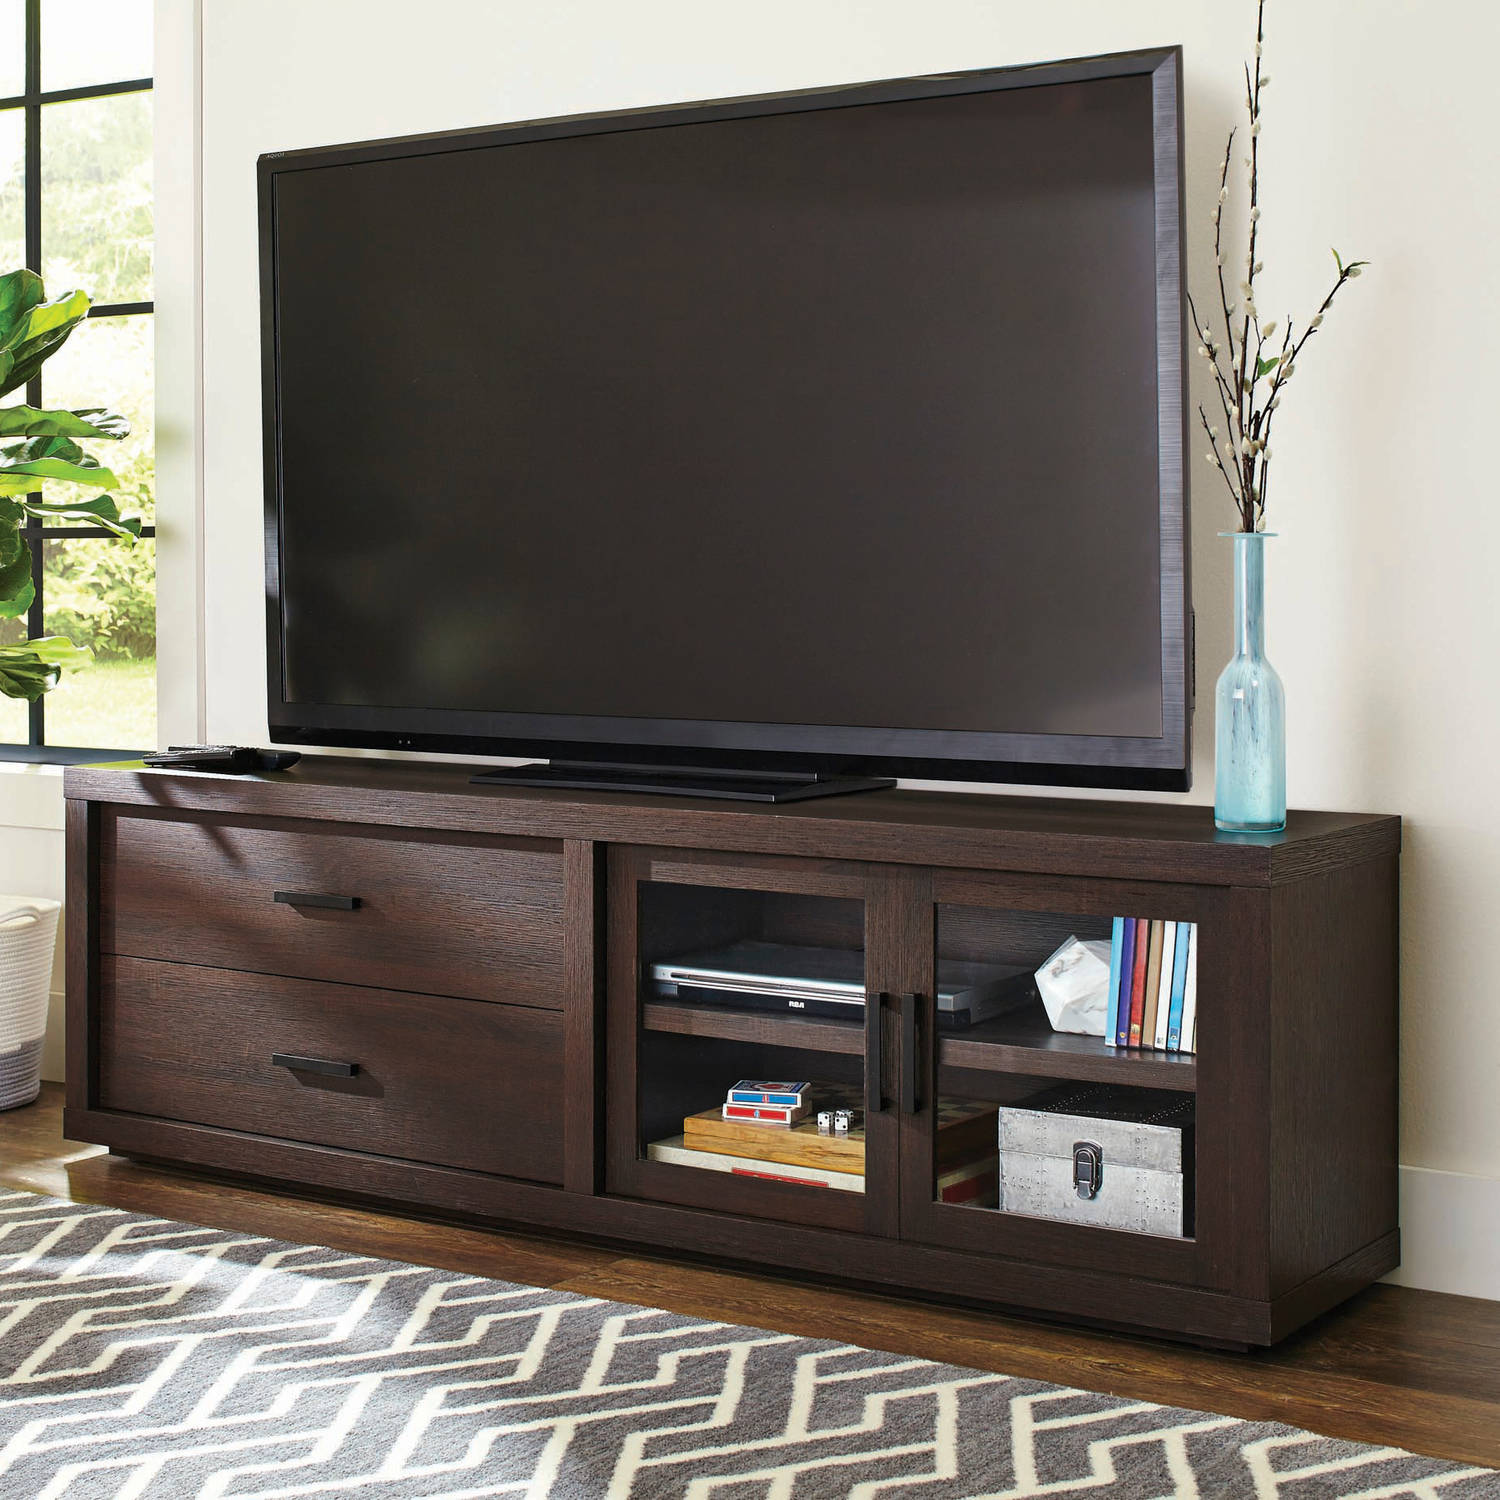 Better Homes and Gardens Steele TV Stand for TVs up to 80